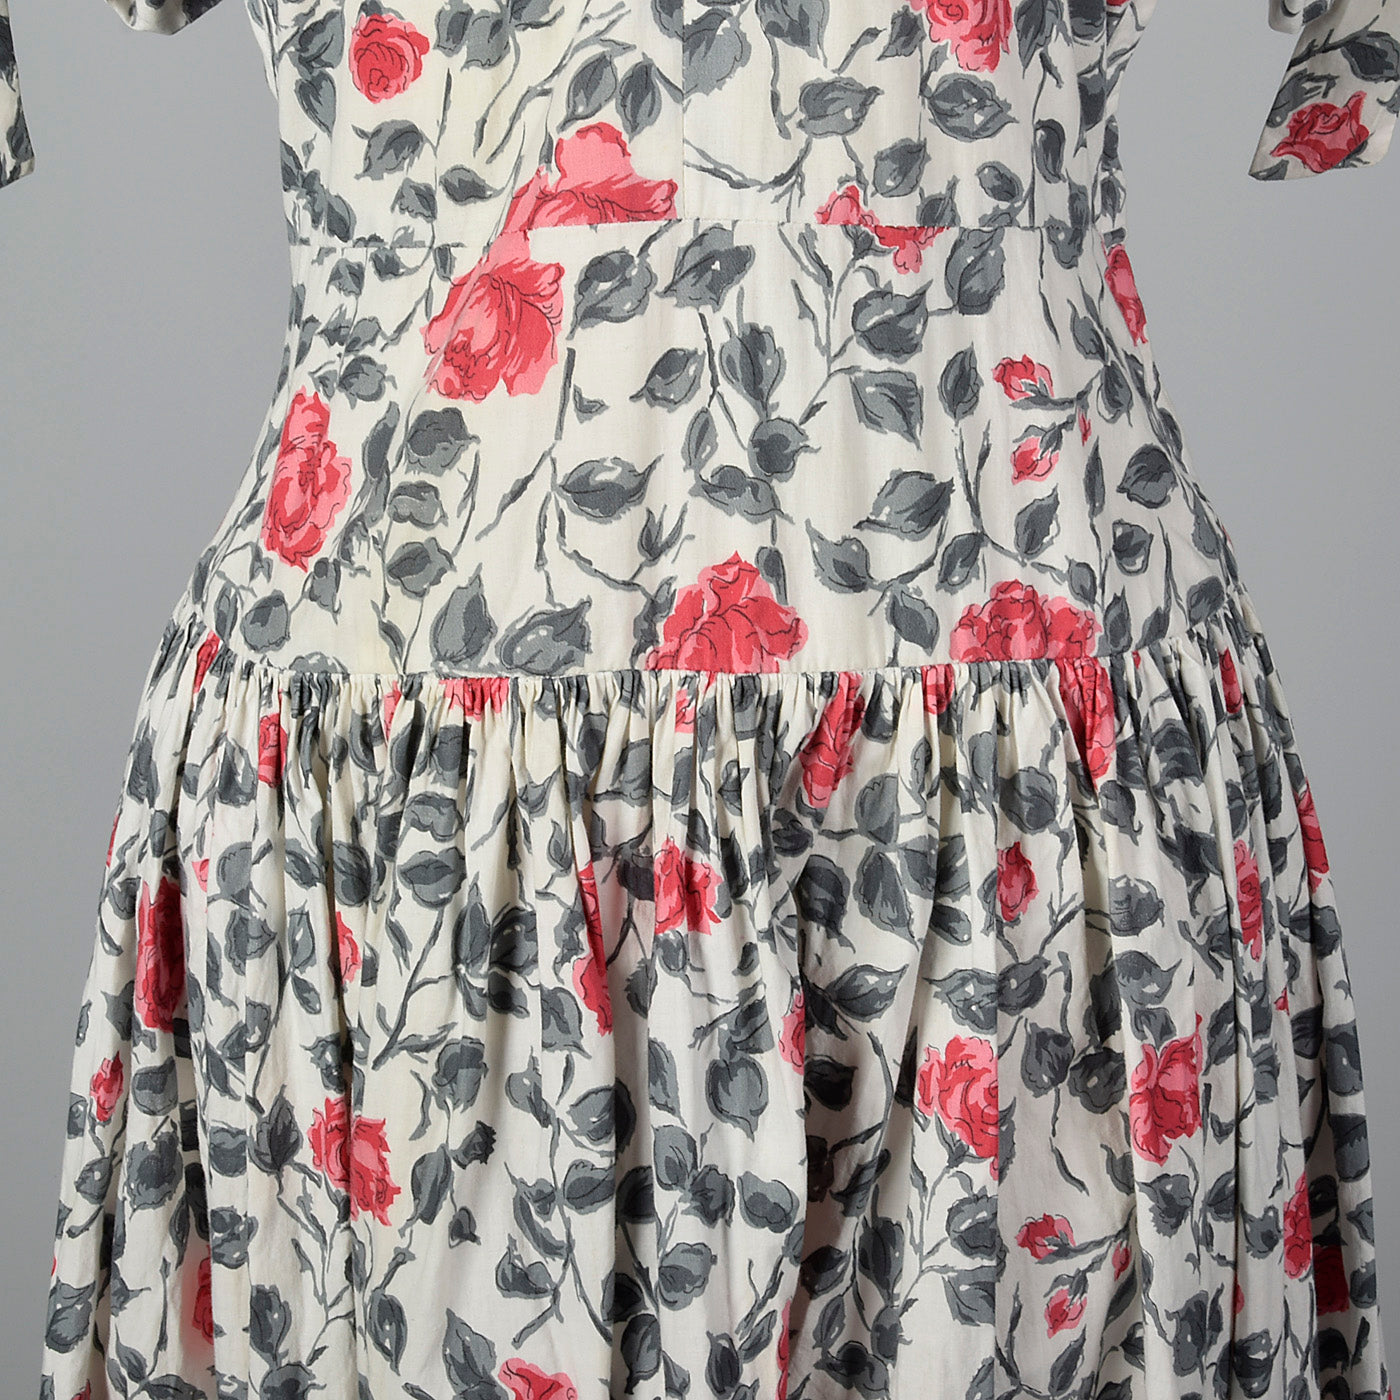 1950s Floral Print Dress with Drop Waist